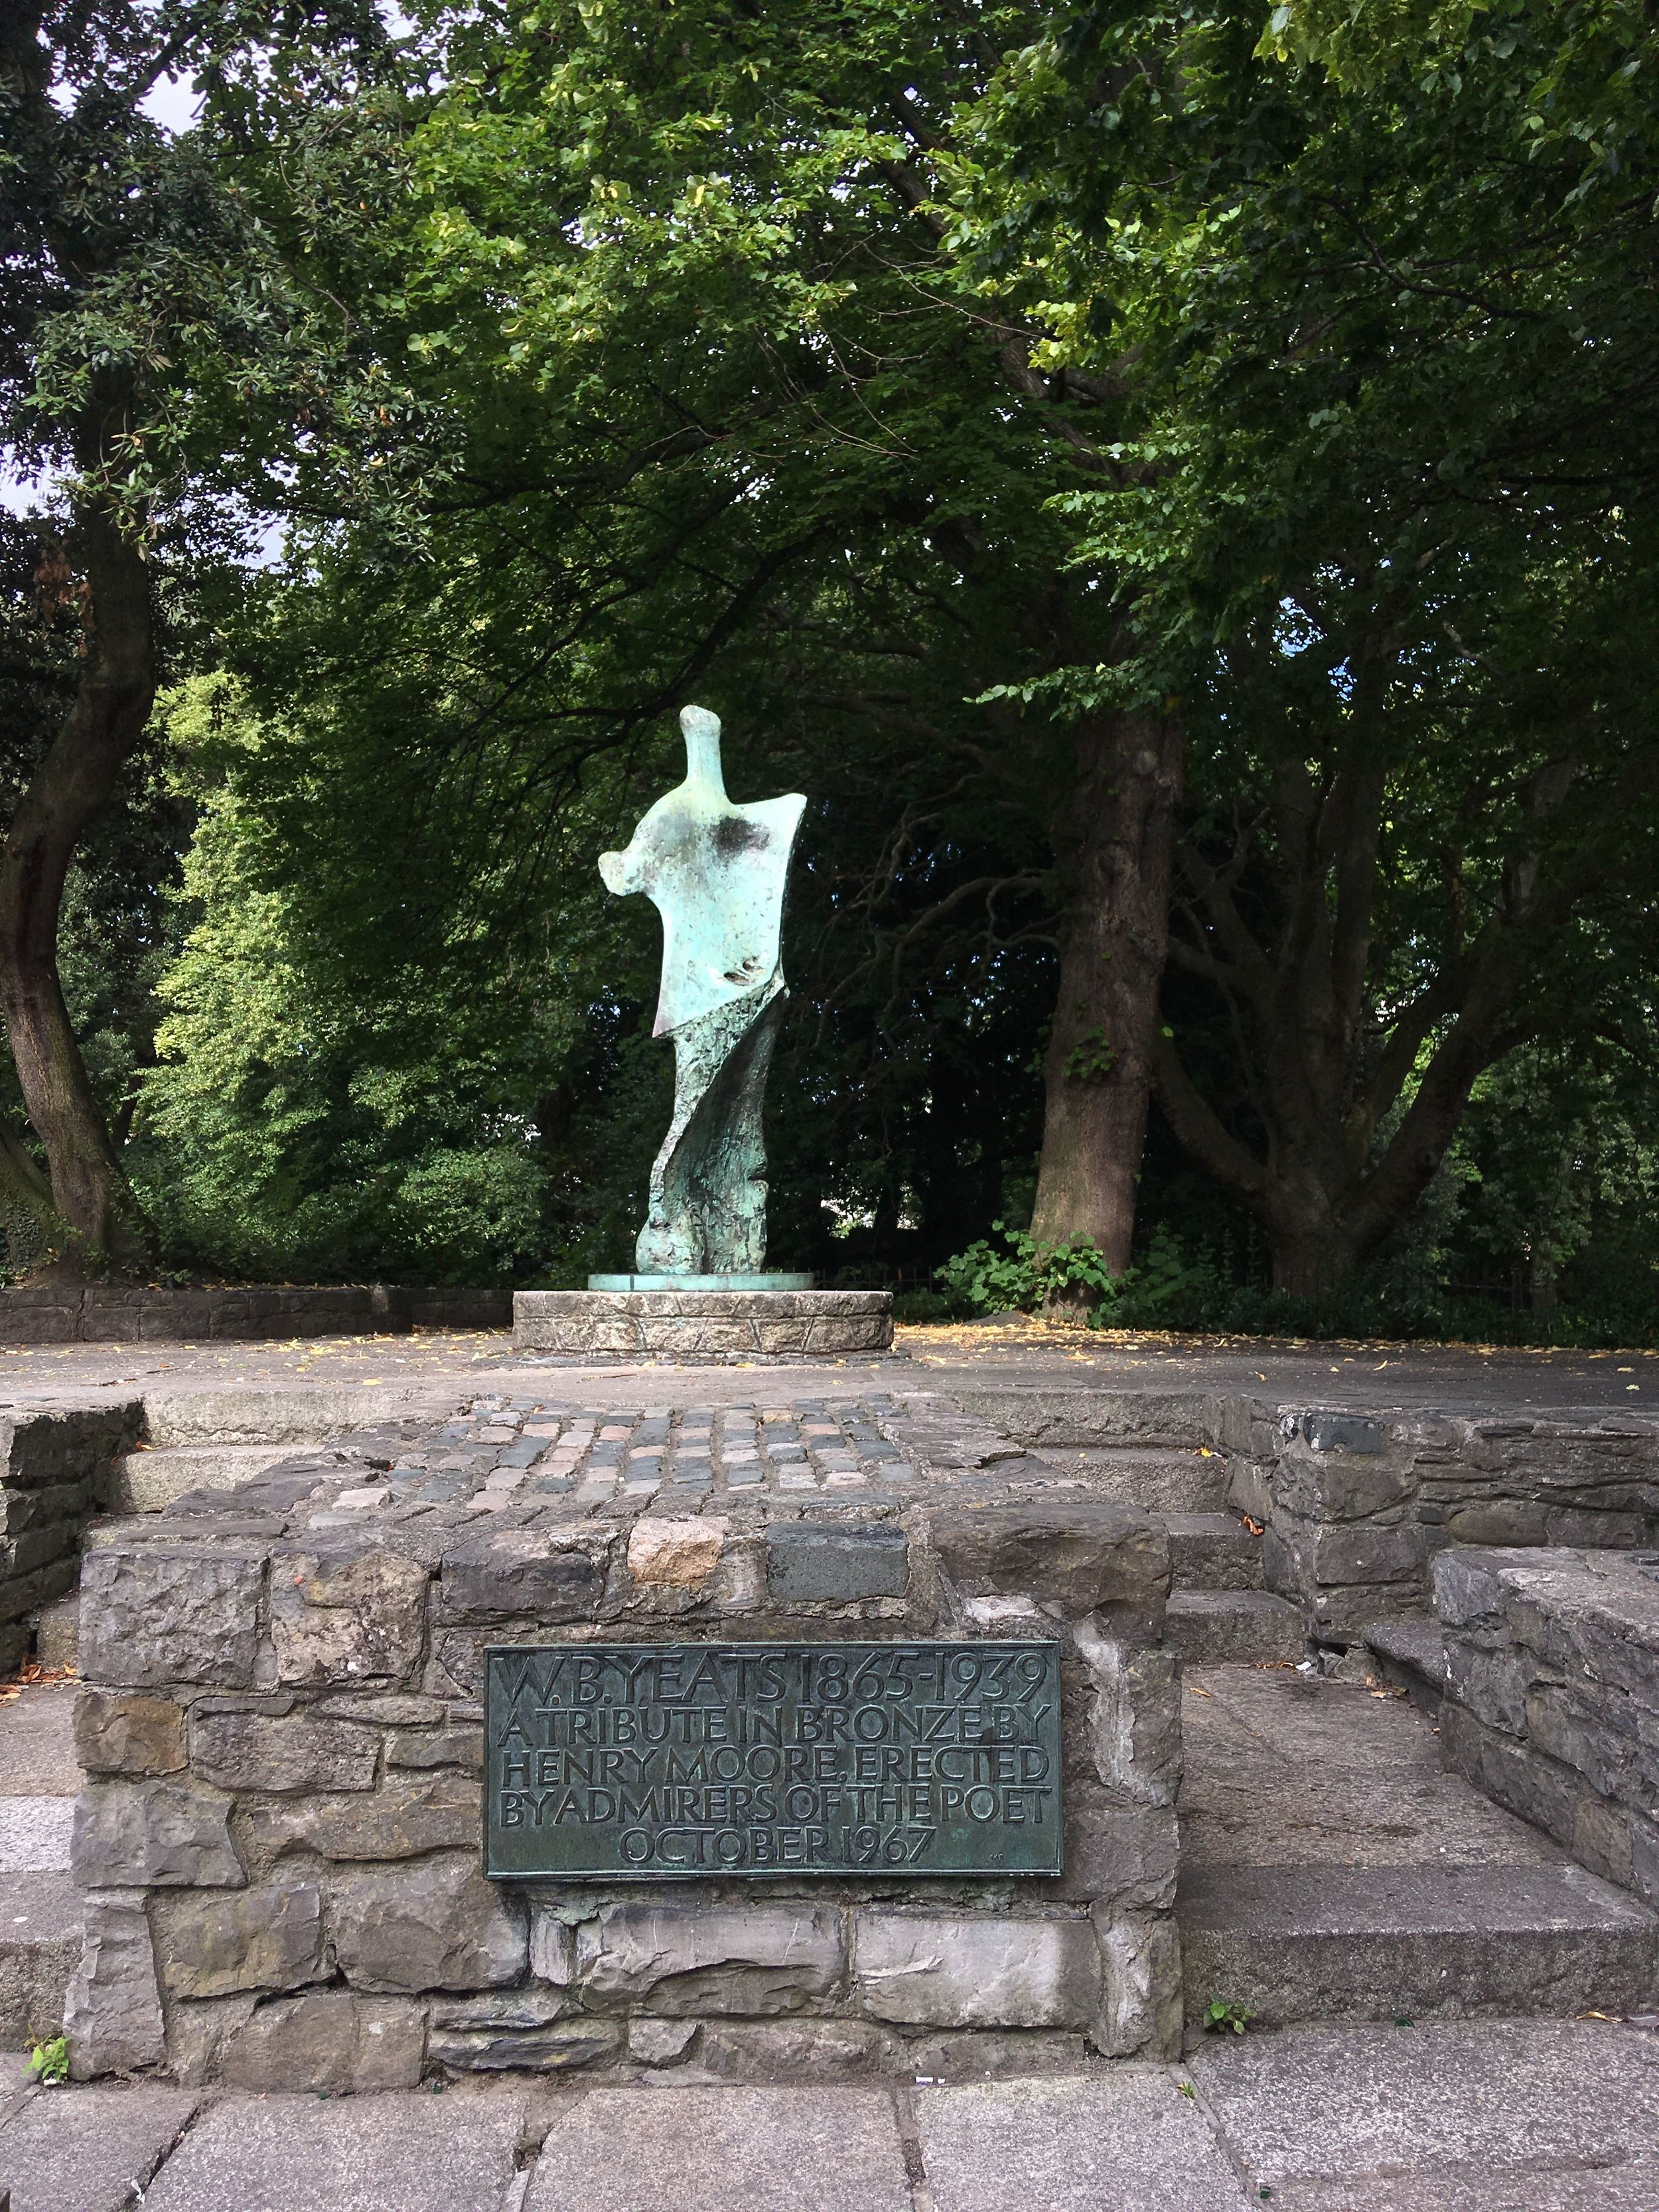 Tribute in bronze to WB Yeats.